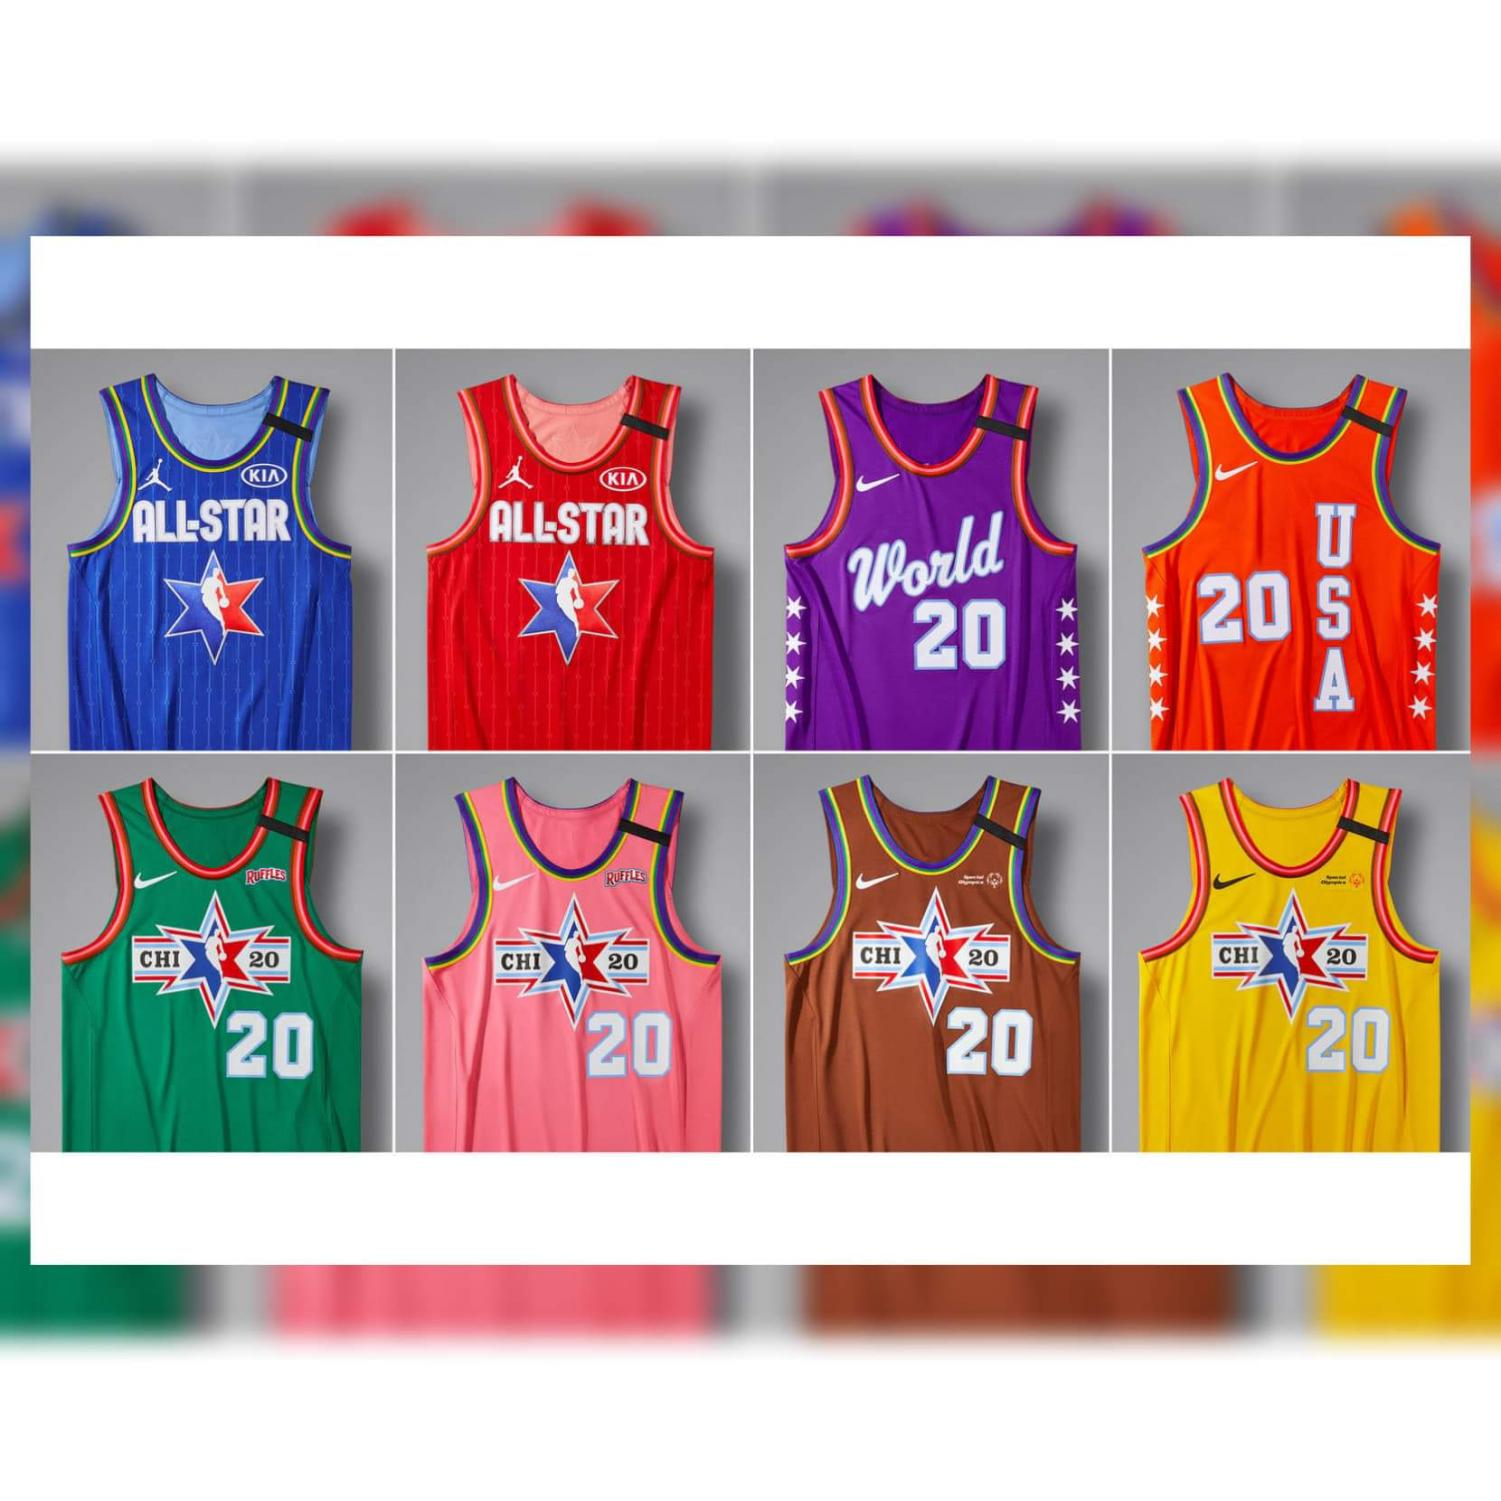 Uniforms for the Allstar Weekend Festivities coming up Feb. 15 & Feb. 16